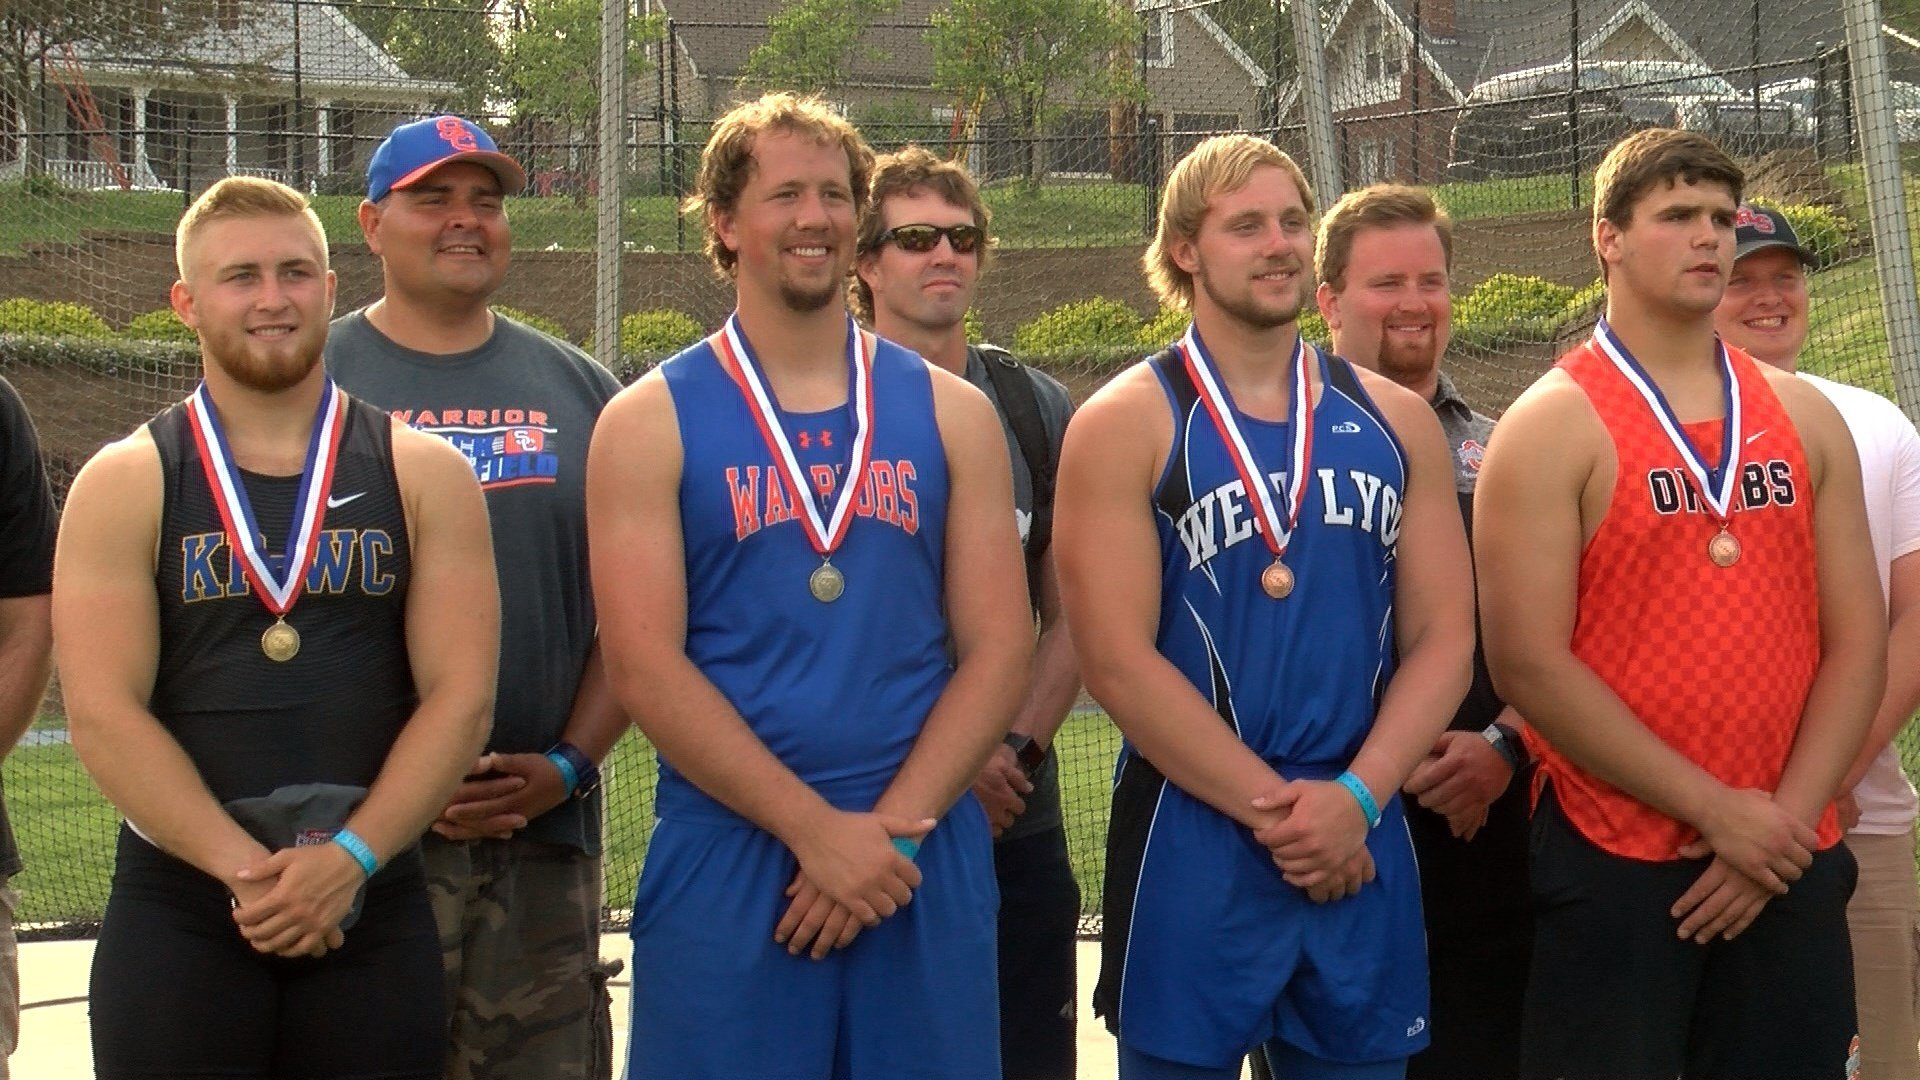 Siouxland throwers claimed the top four spots in the Class 2A discus competition on Friday.